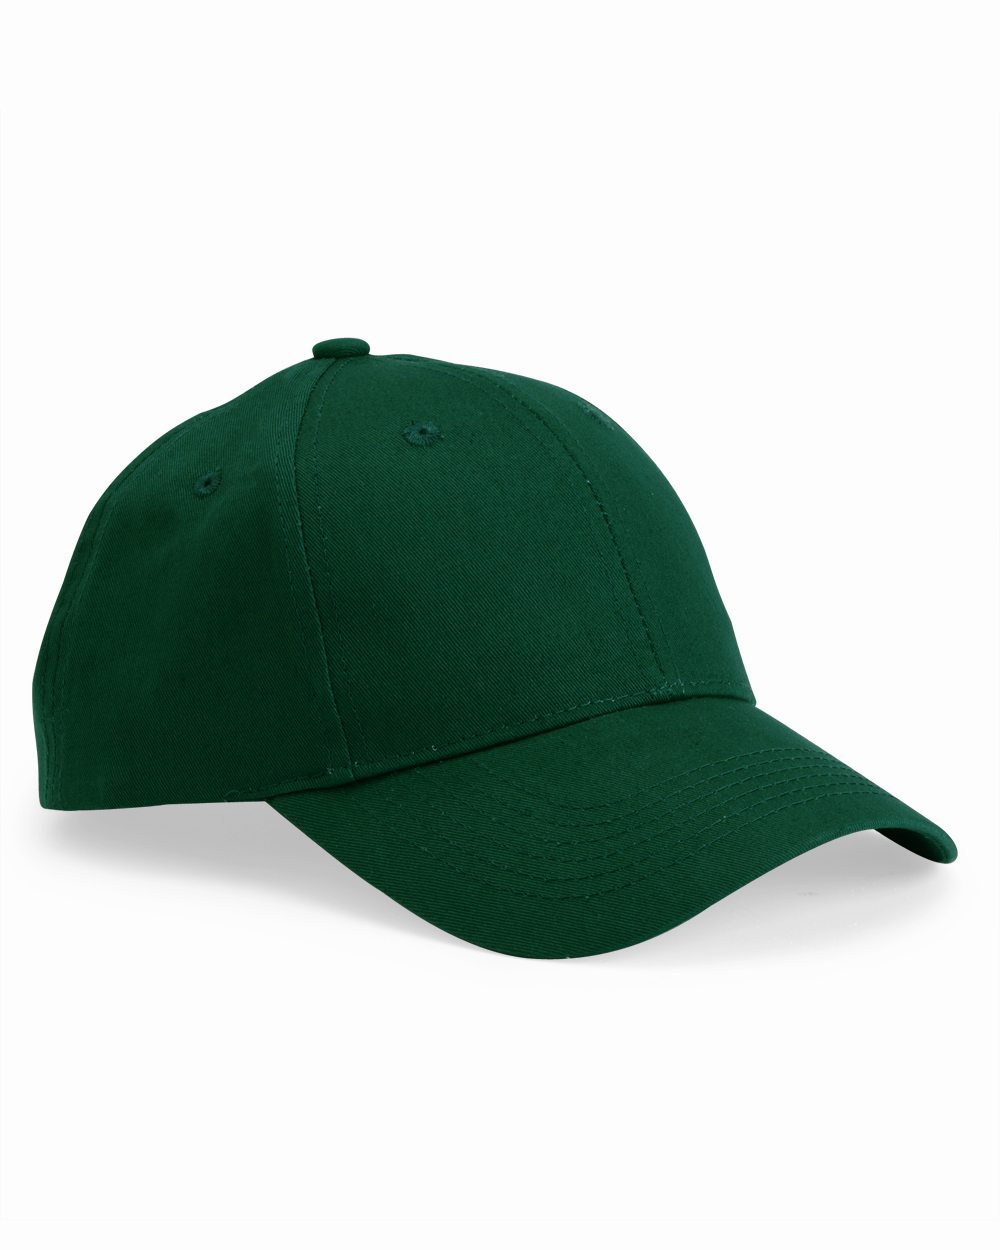 Valucap VC100 Lightweight Structured Cotton Twill Cap ...